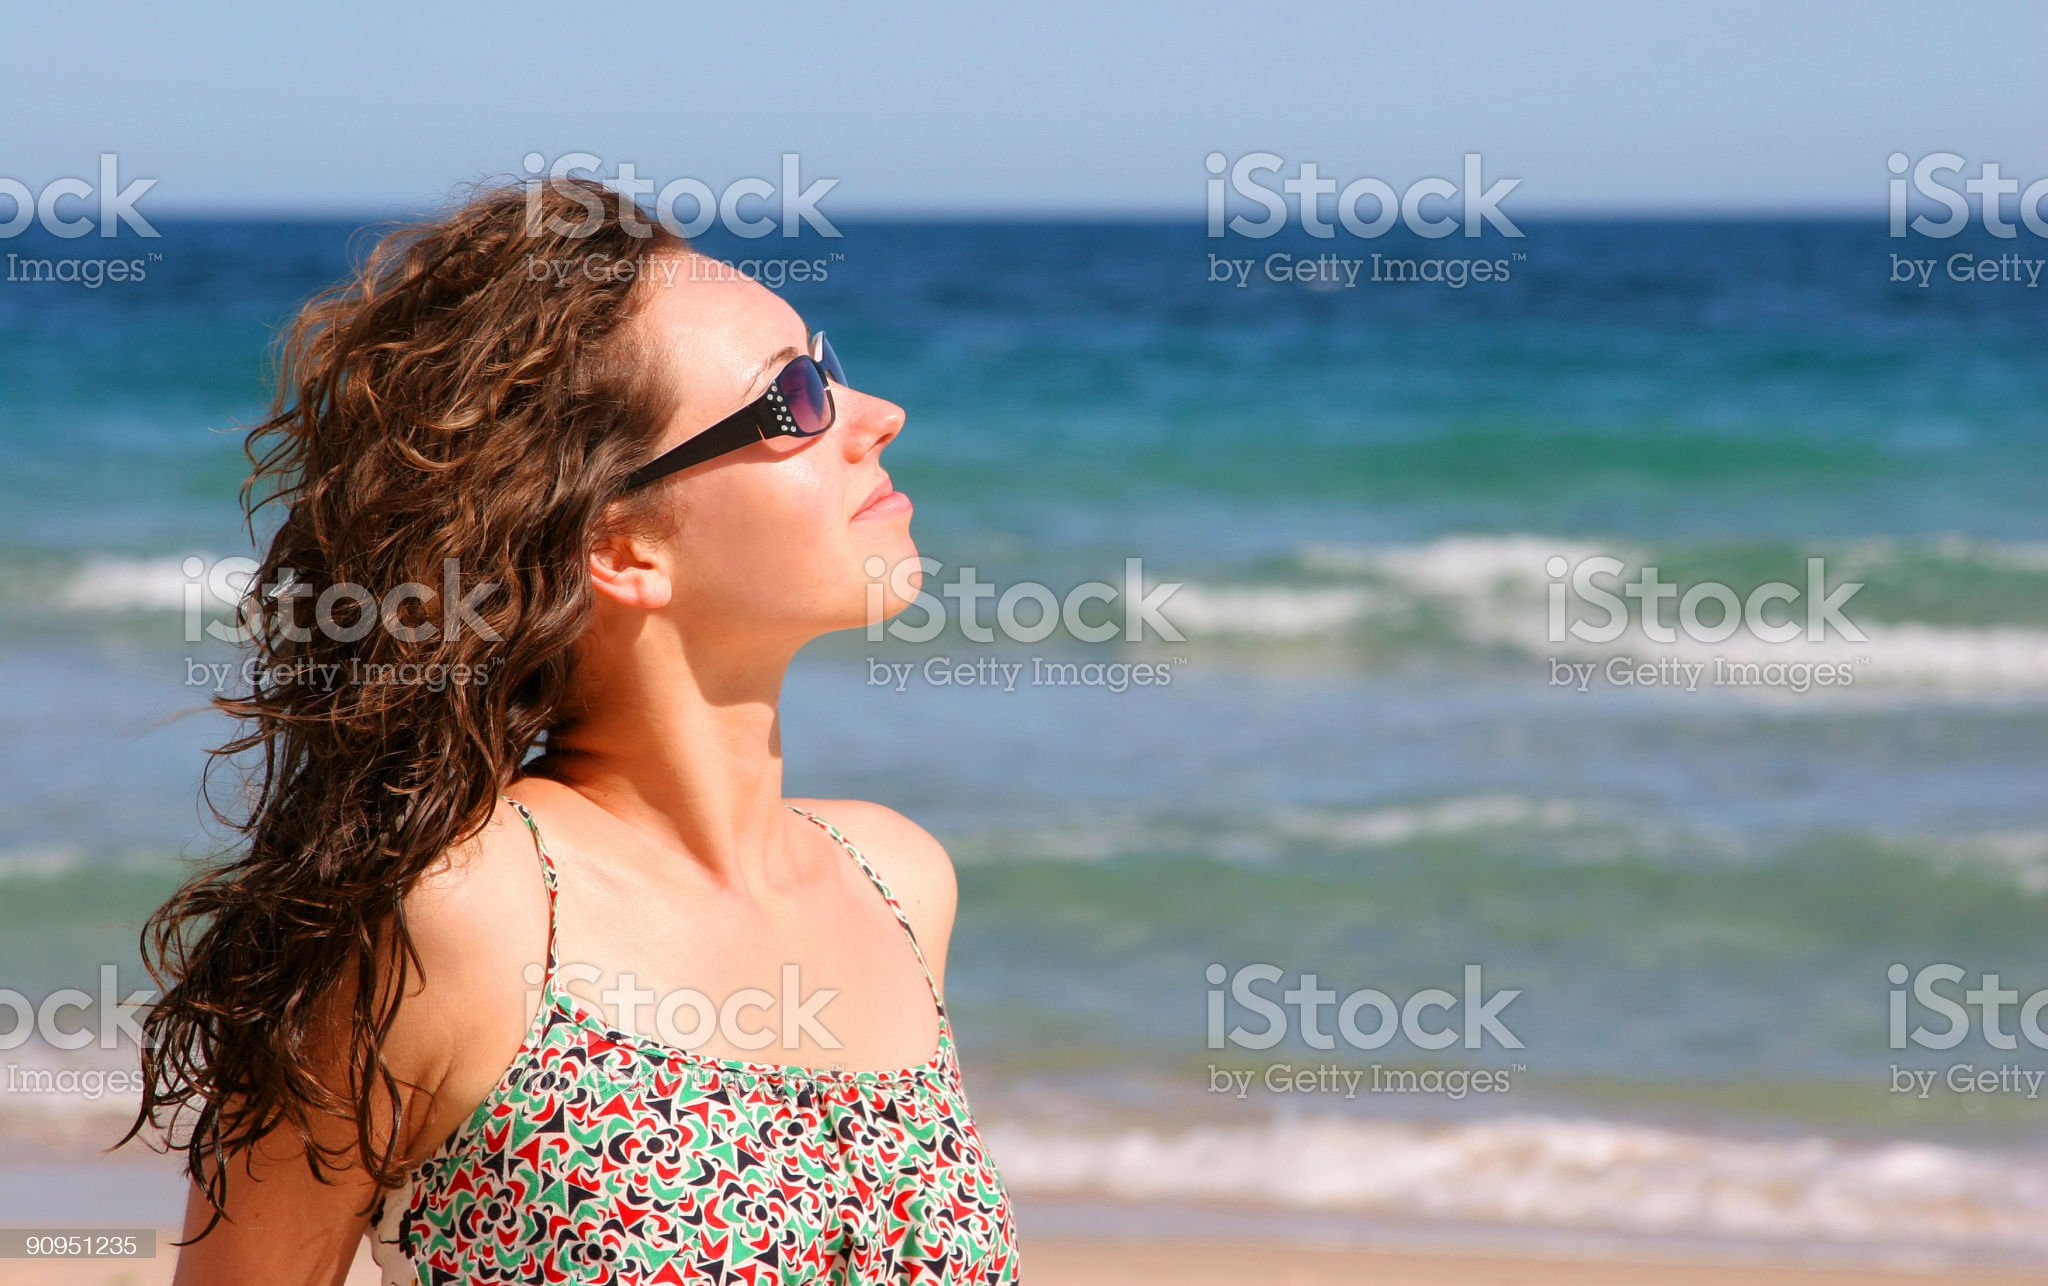 Beach Relaxation royalty-free stock photo